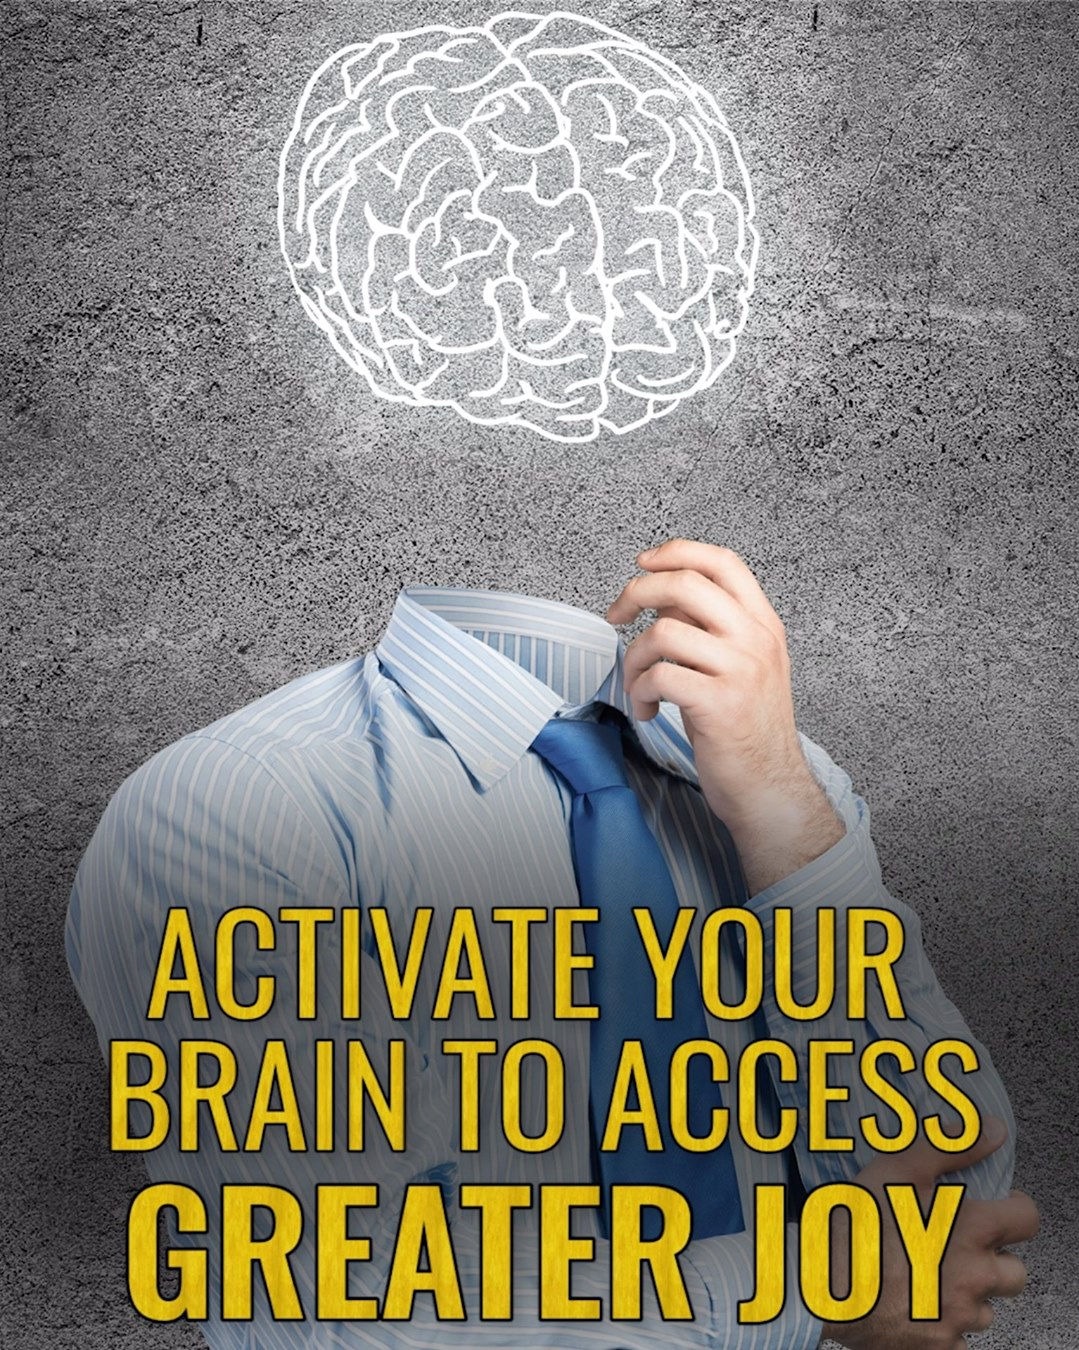 Activate your brain for greater joy